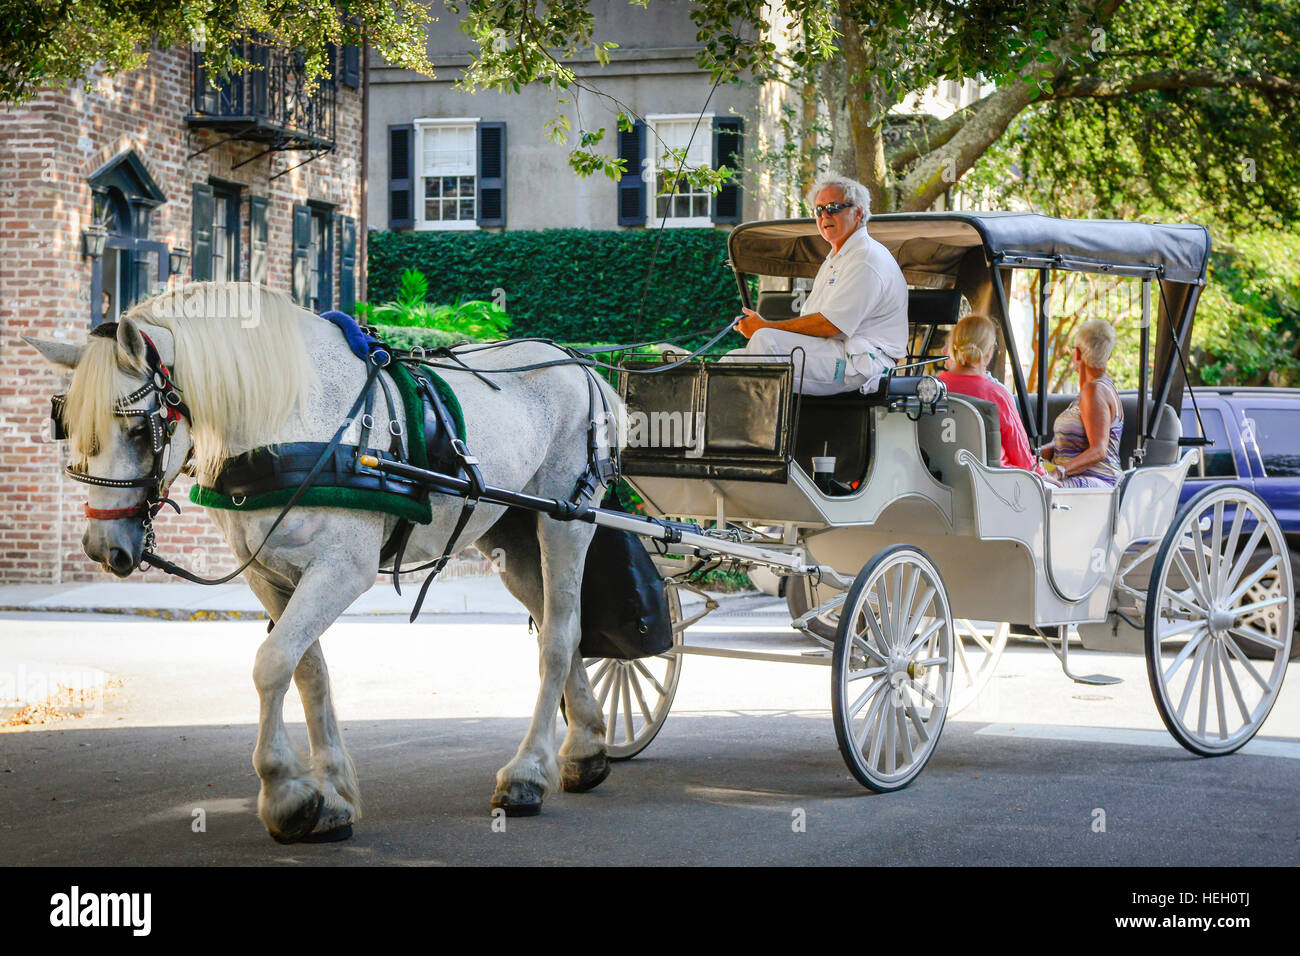 A Beautiful White Horse Pulls A Vintage Carriage Along With A Tour Stock Photo Alamy